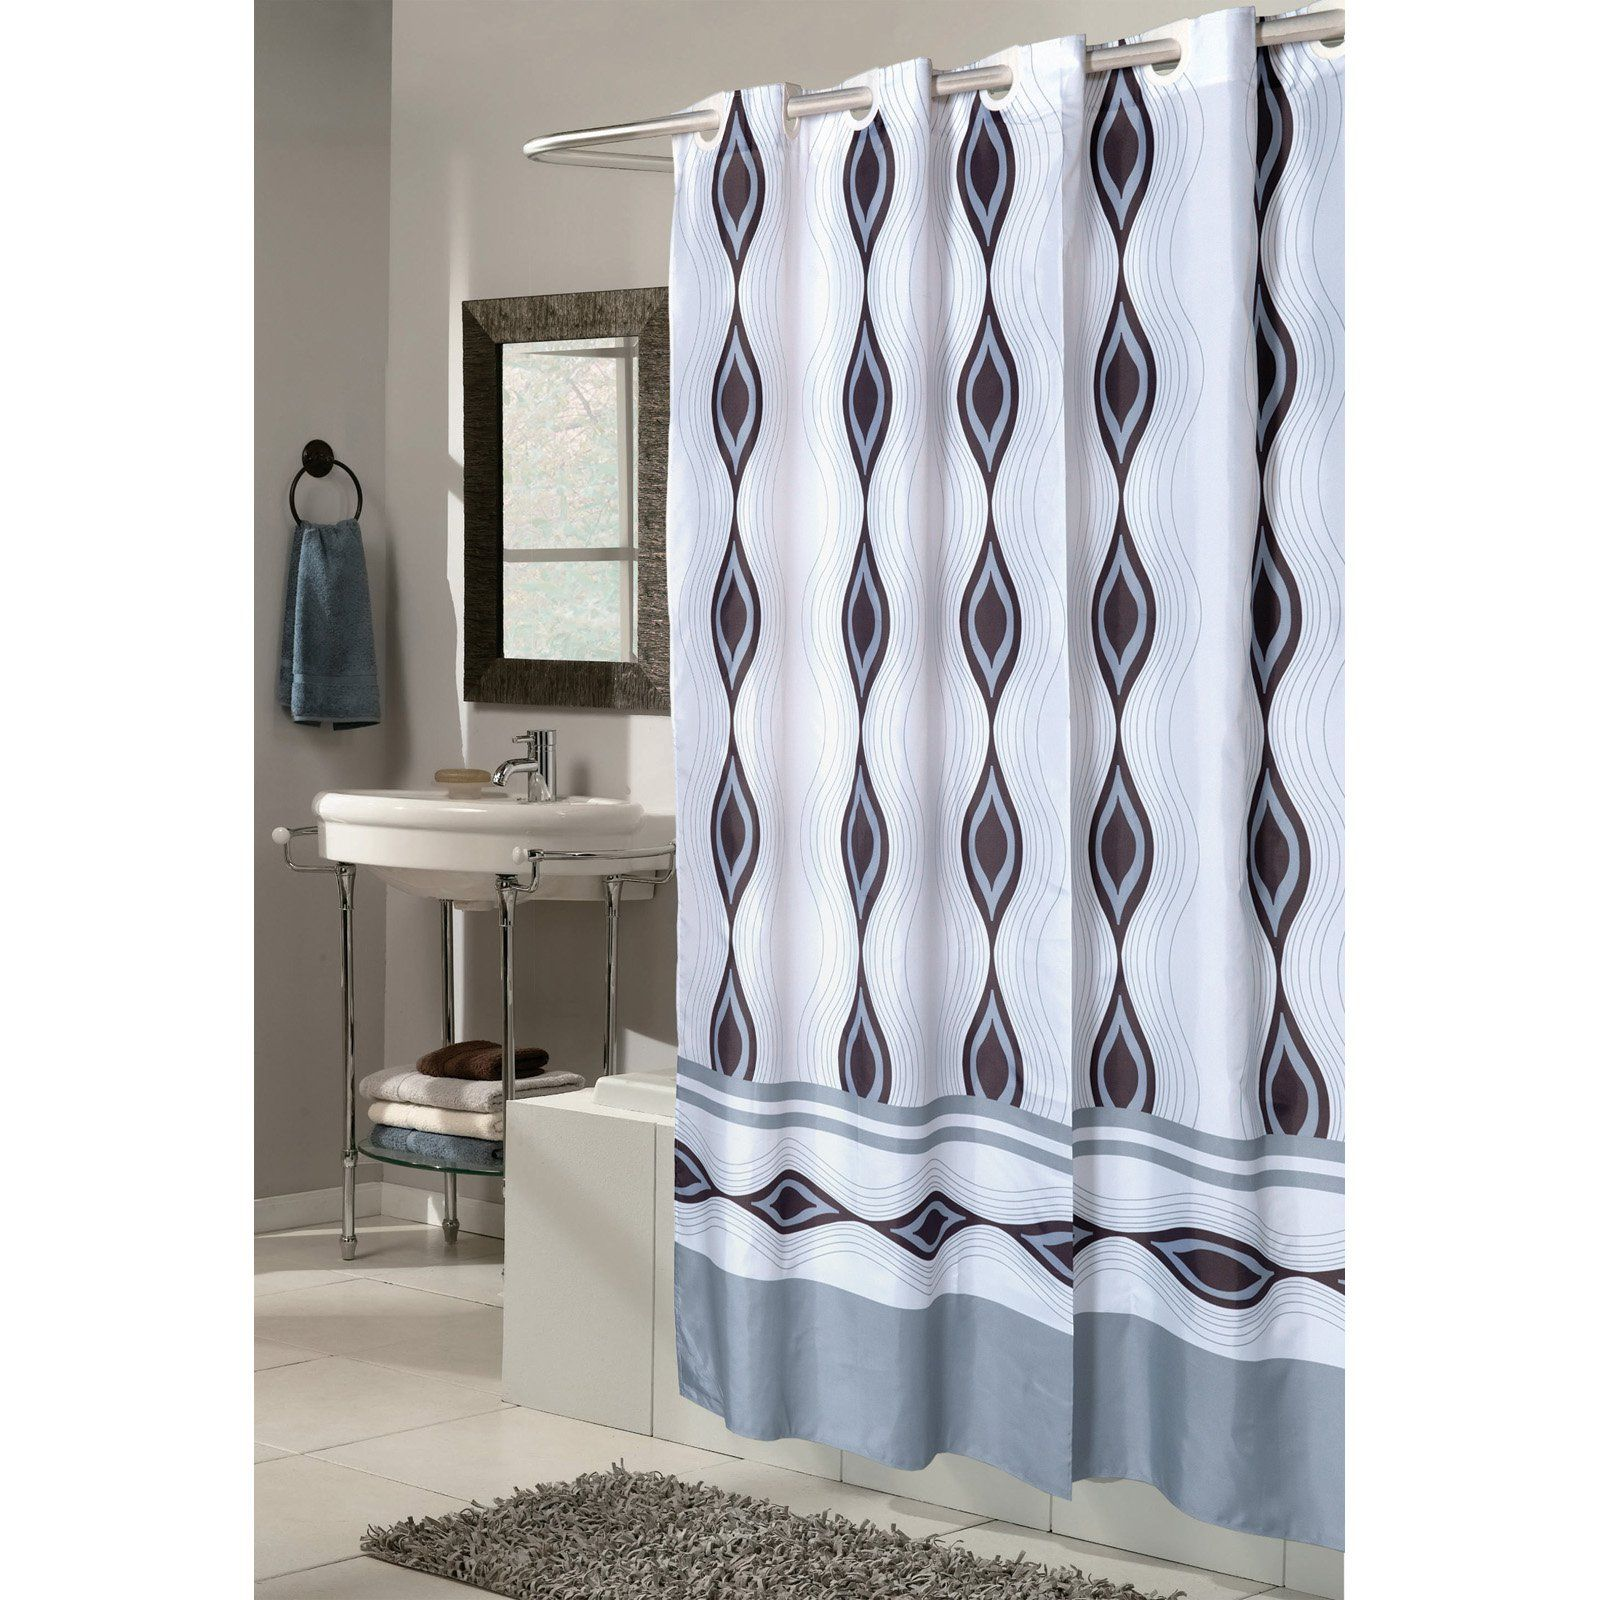 Carnation Home Fashions Ez On Grommet Style Harlequin Fabric